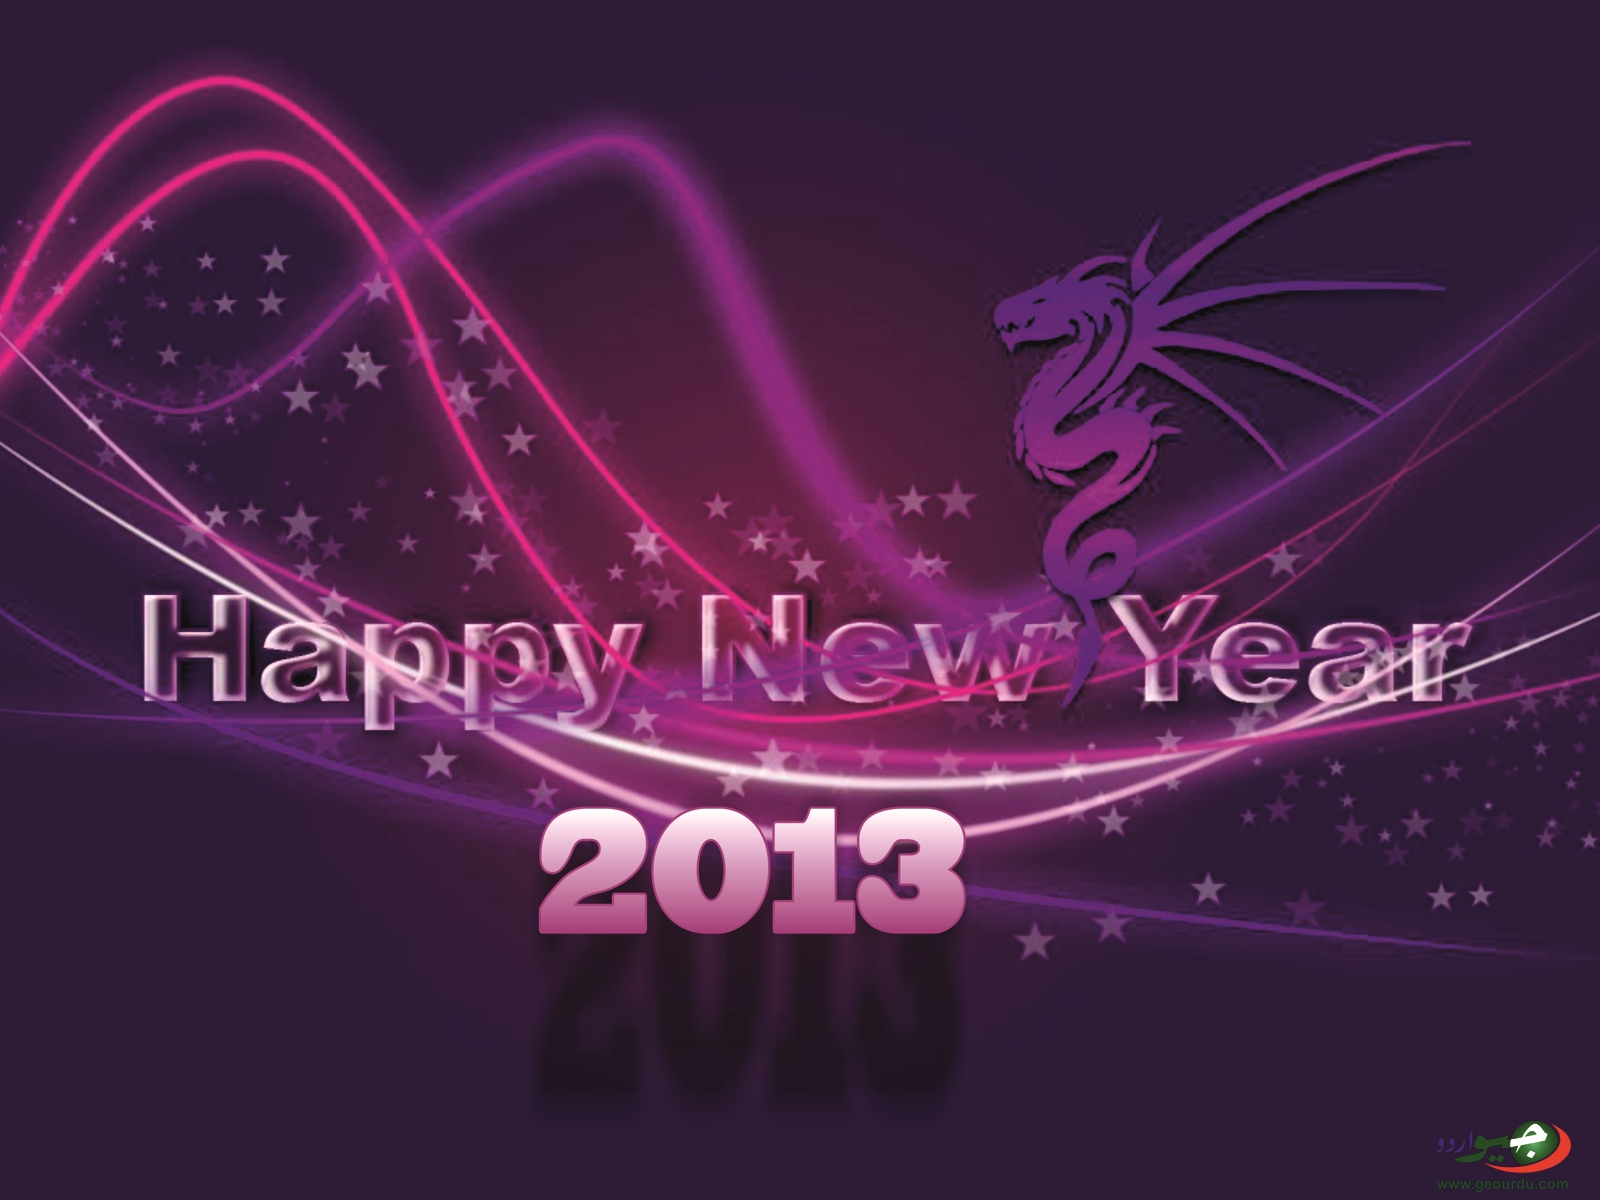 happy new year 2013 happy new year 2013 wallpapers wallpapers . 1600 x 1200.Happy New Year Graphics Free Download